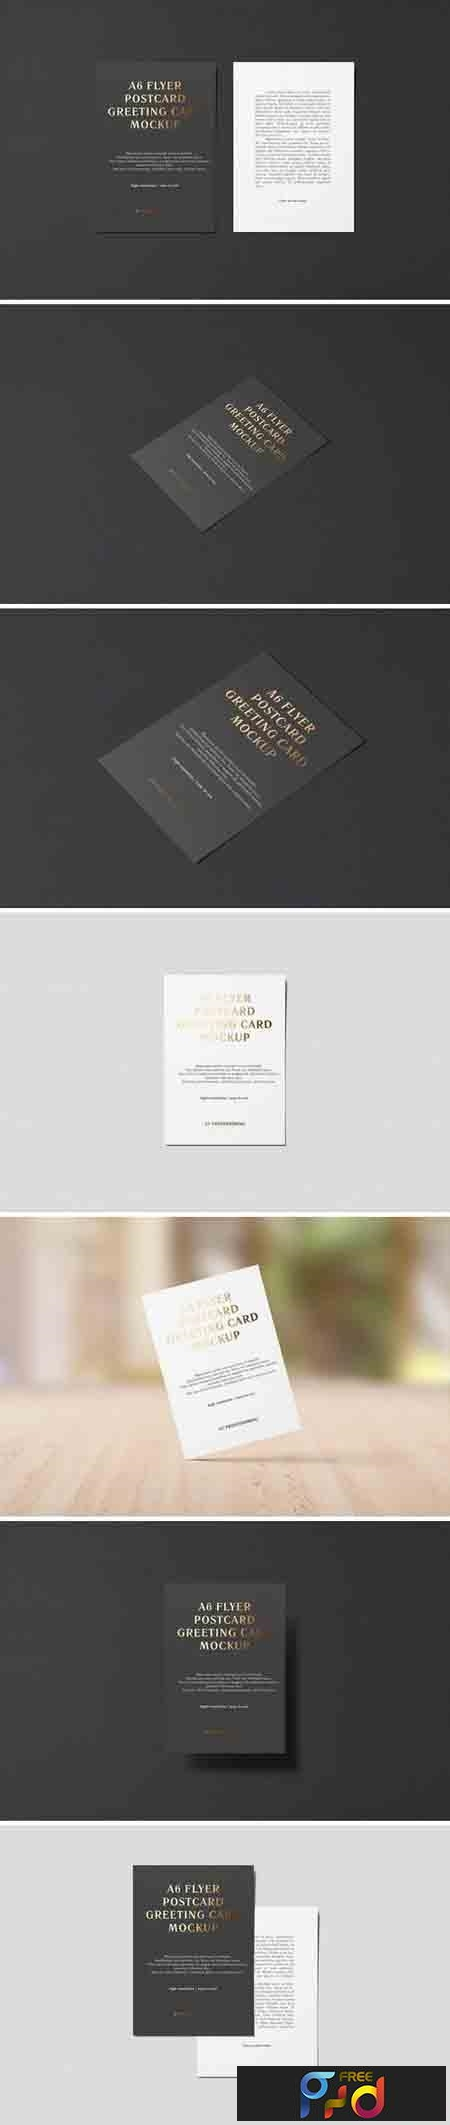 A6 Portrait Flyer, Postcard, Greeting Card Mockup 1